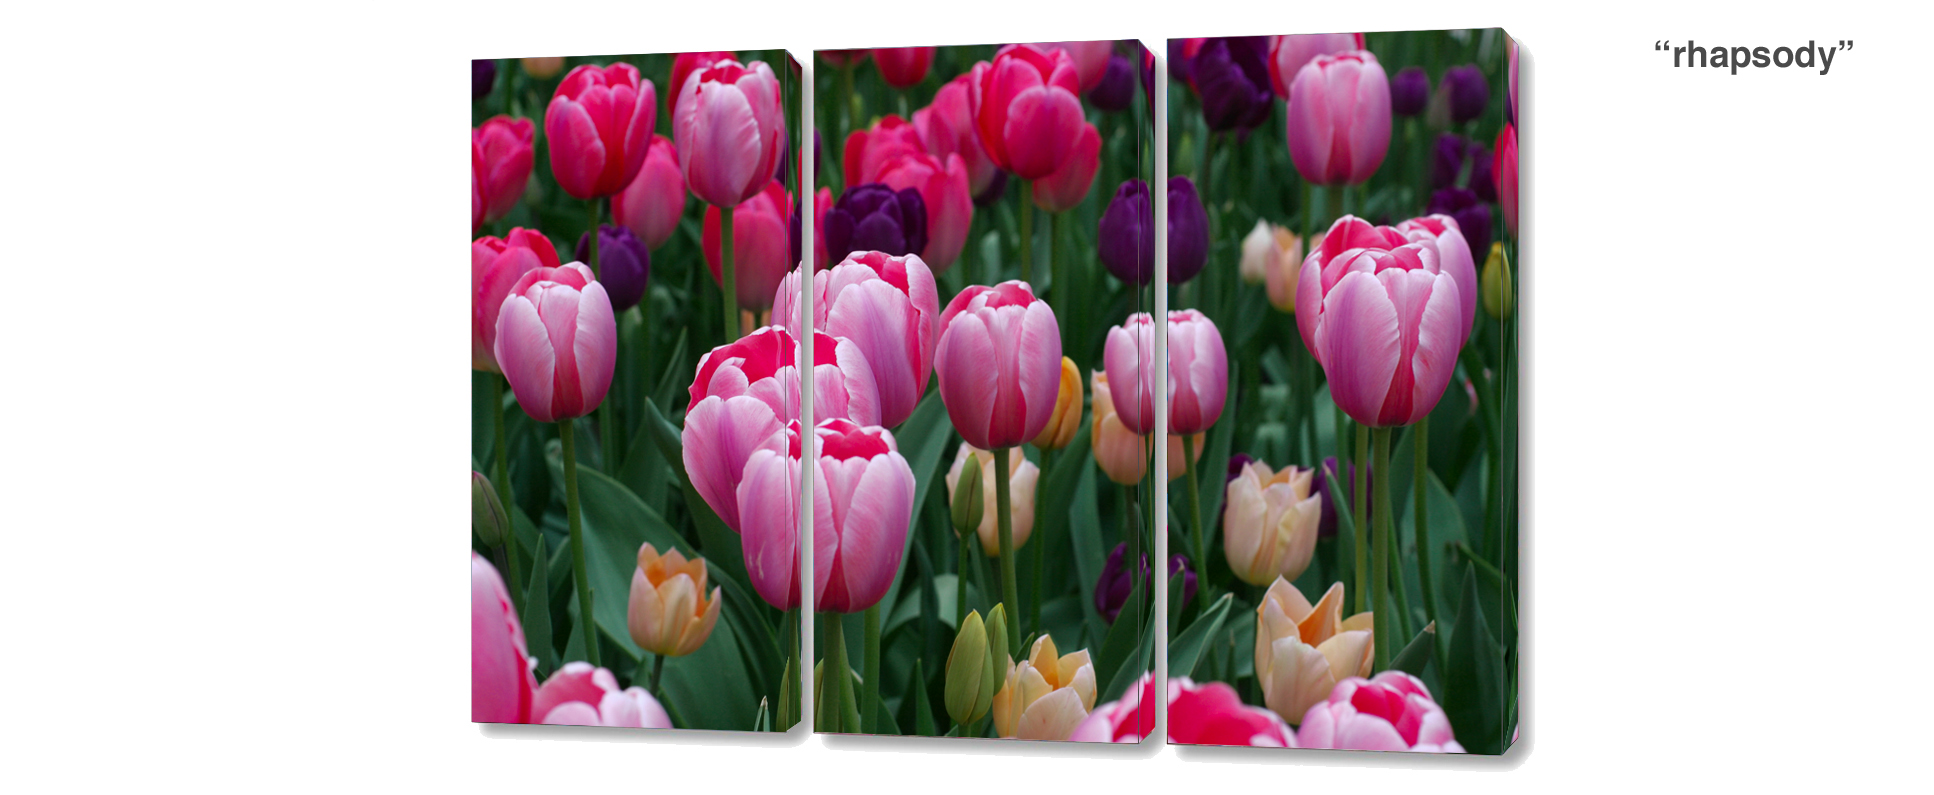 triptych tulips - 3 Piece limited edition giclee canvas floral wall decor